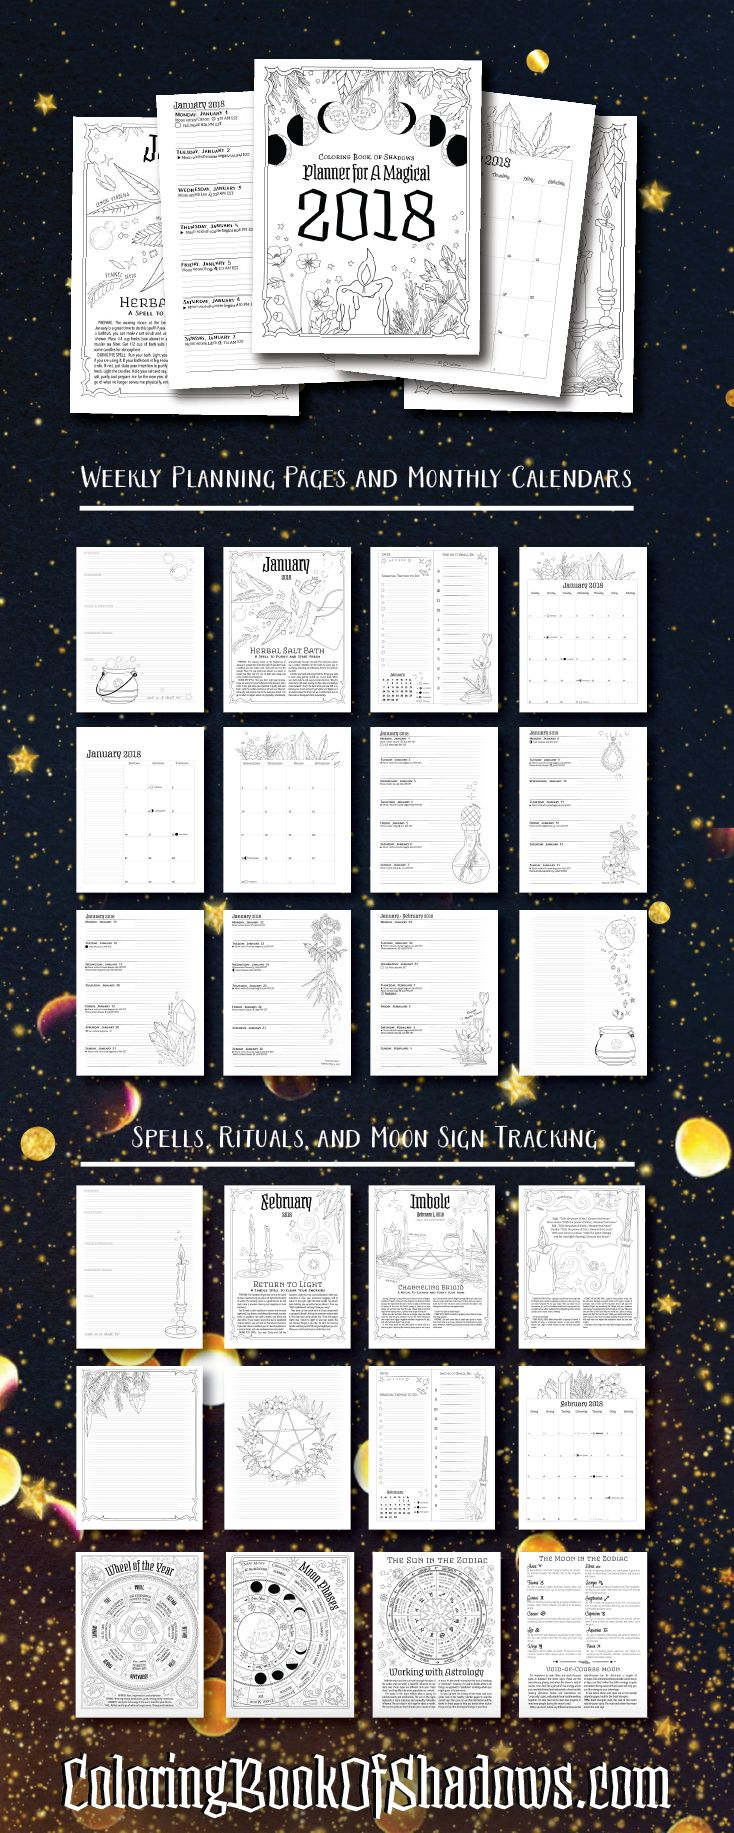 Planner For A Magical 2018  Printable Pdf!